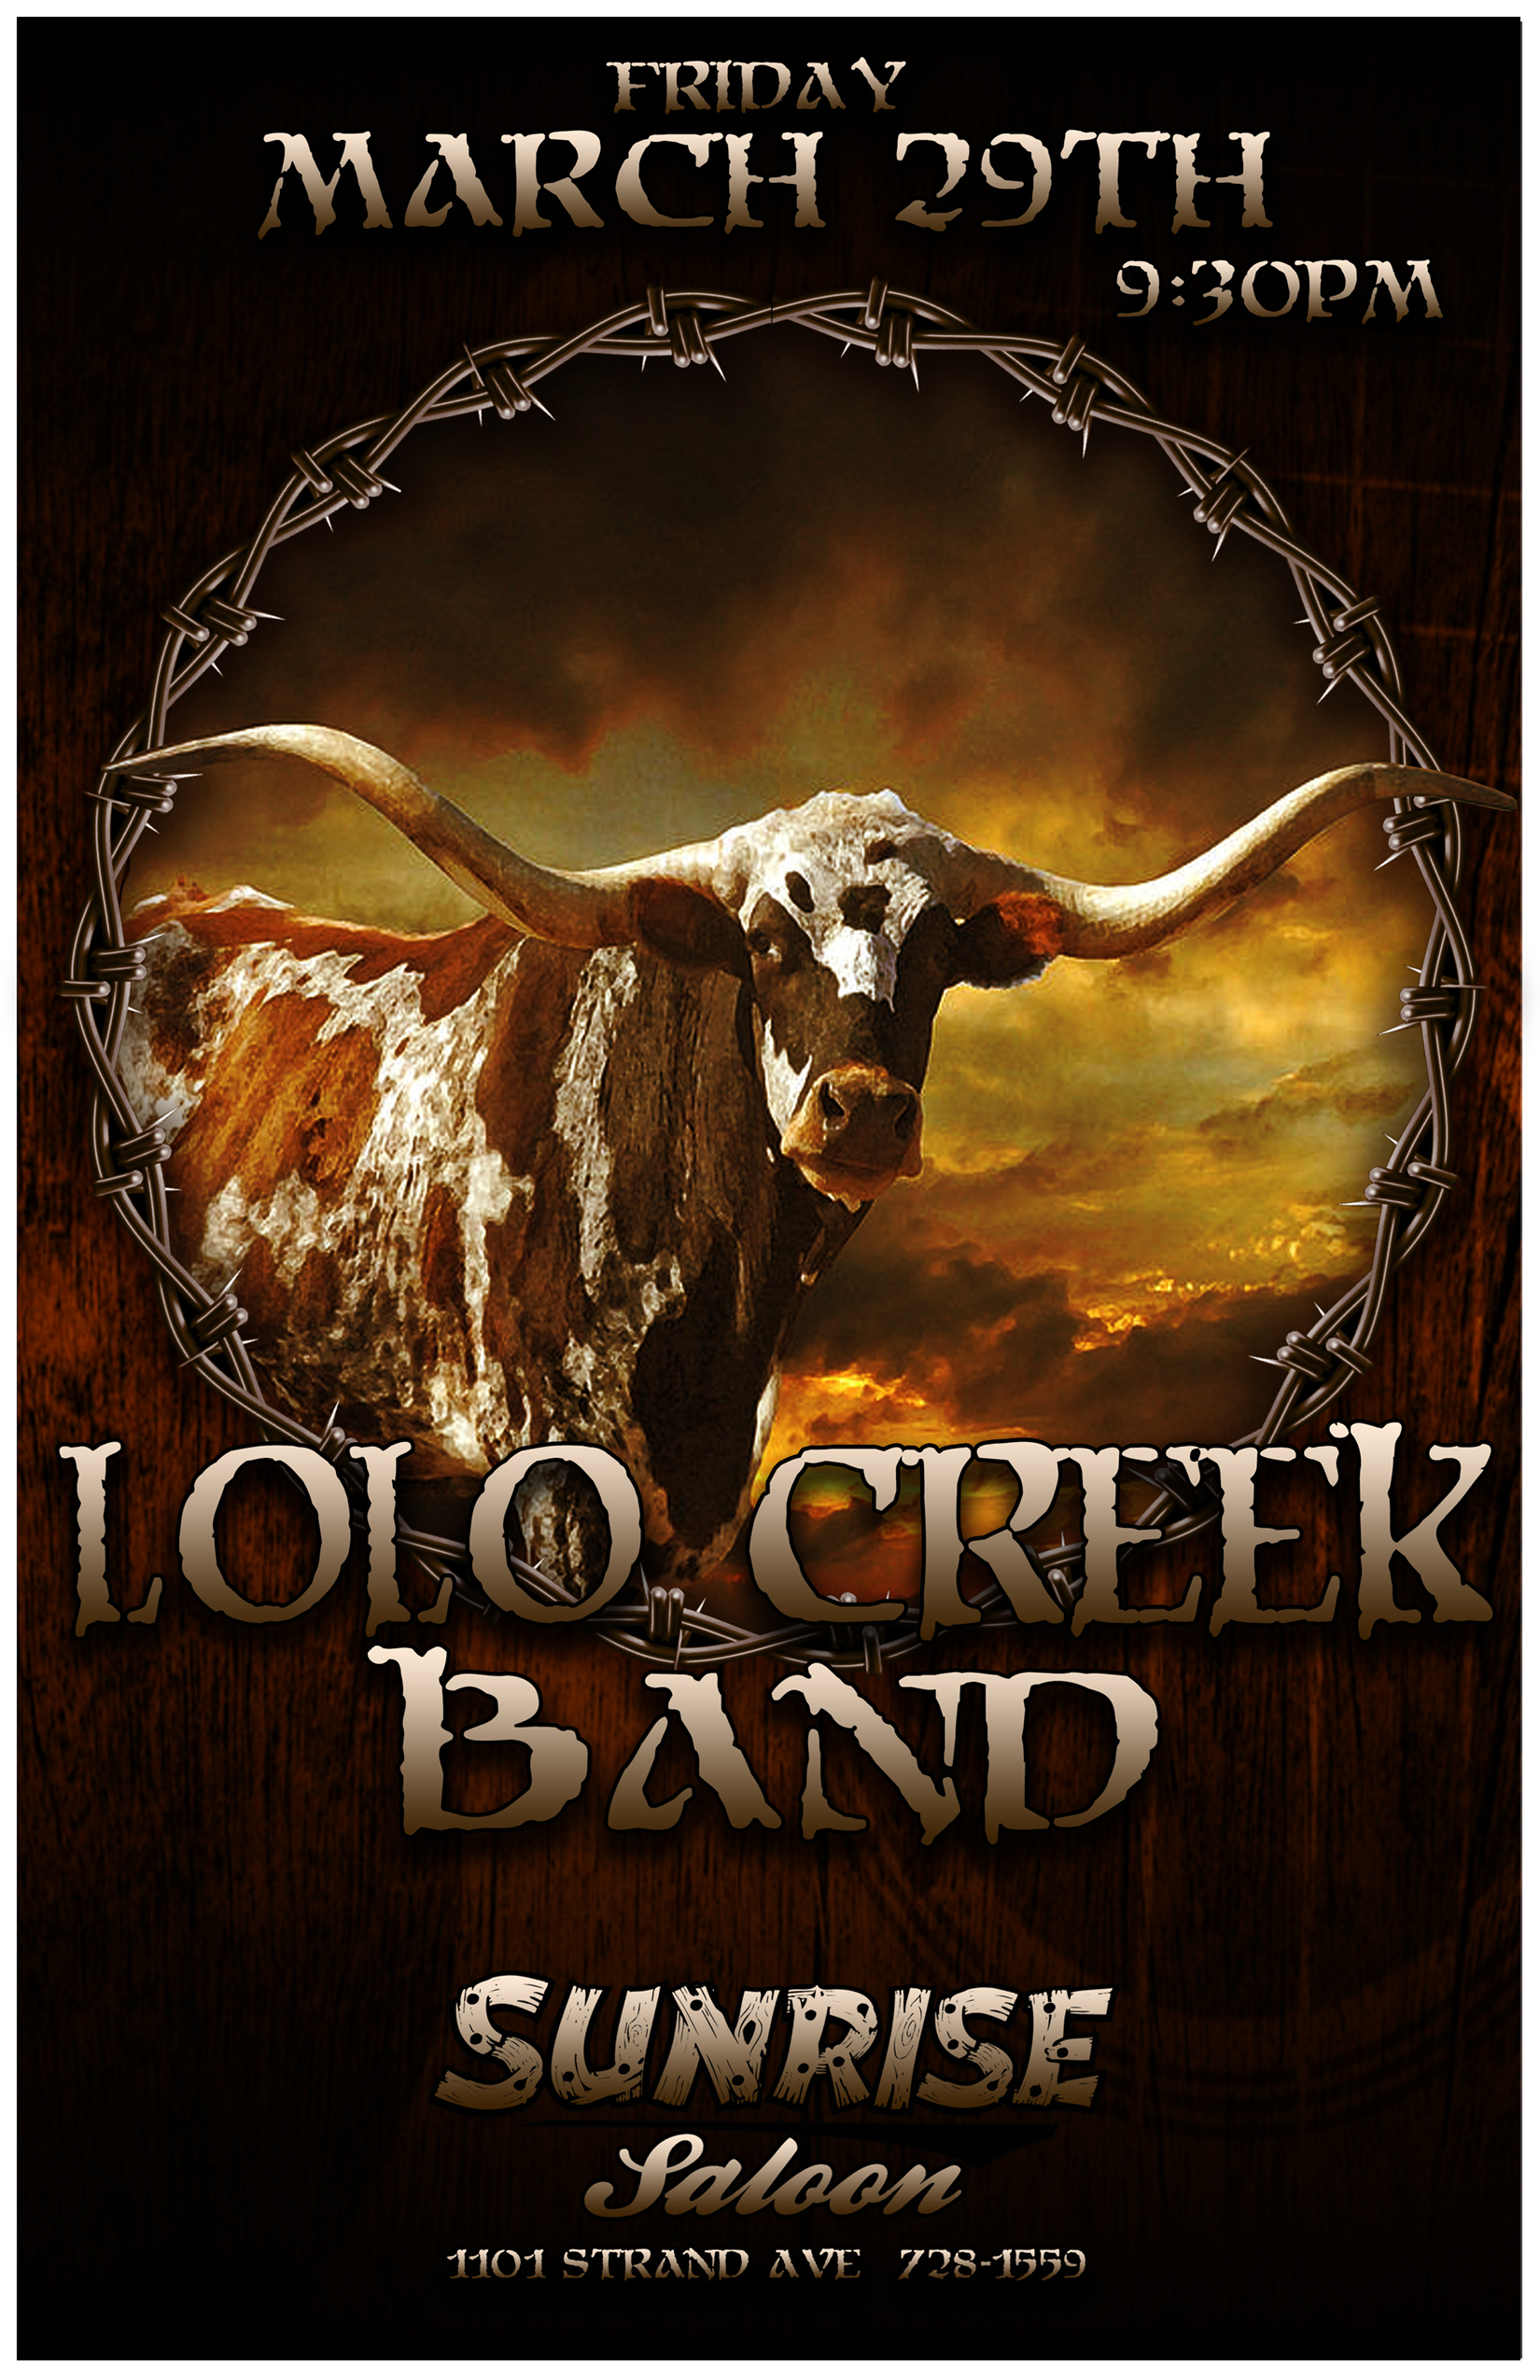 Lolo Creek Band